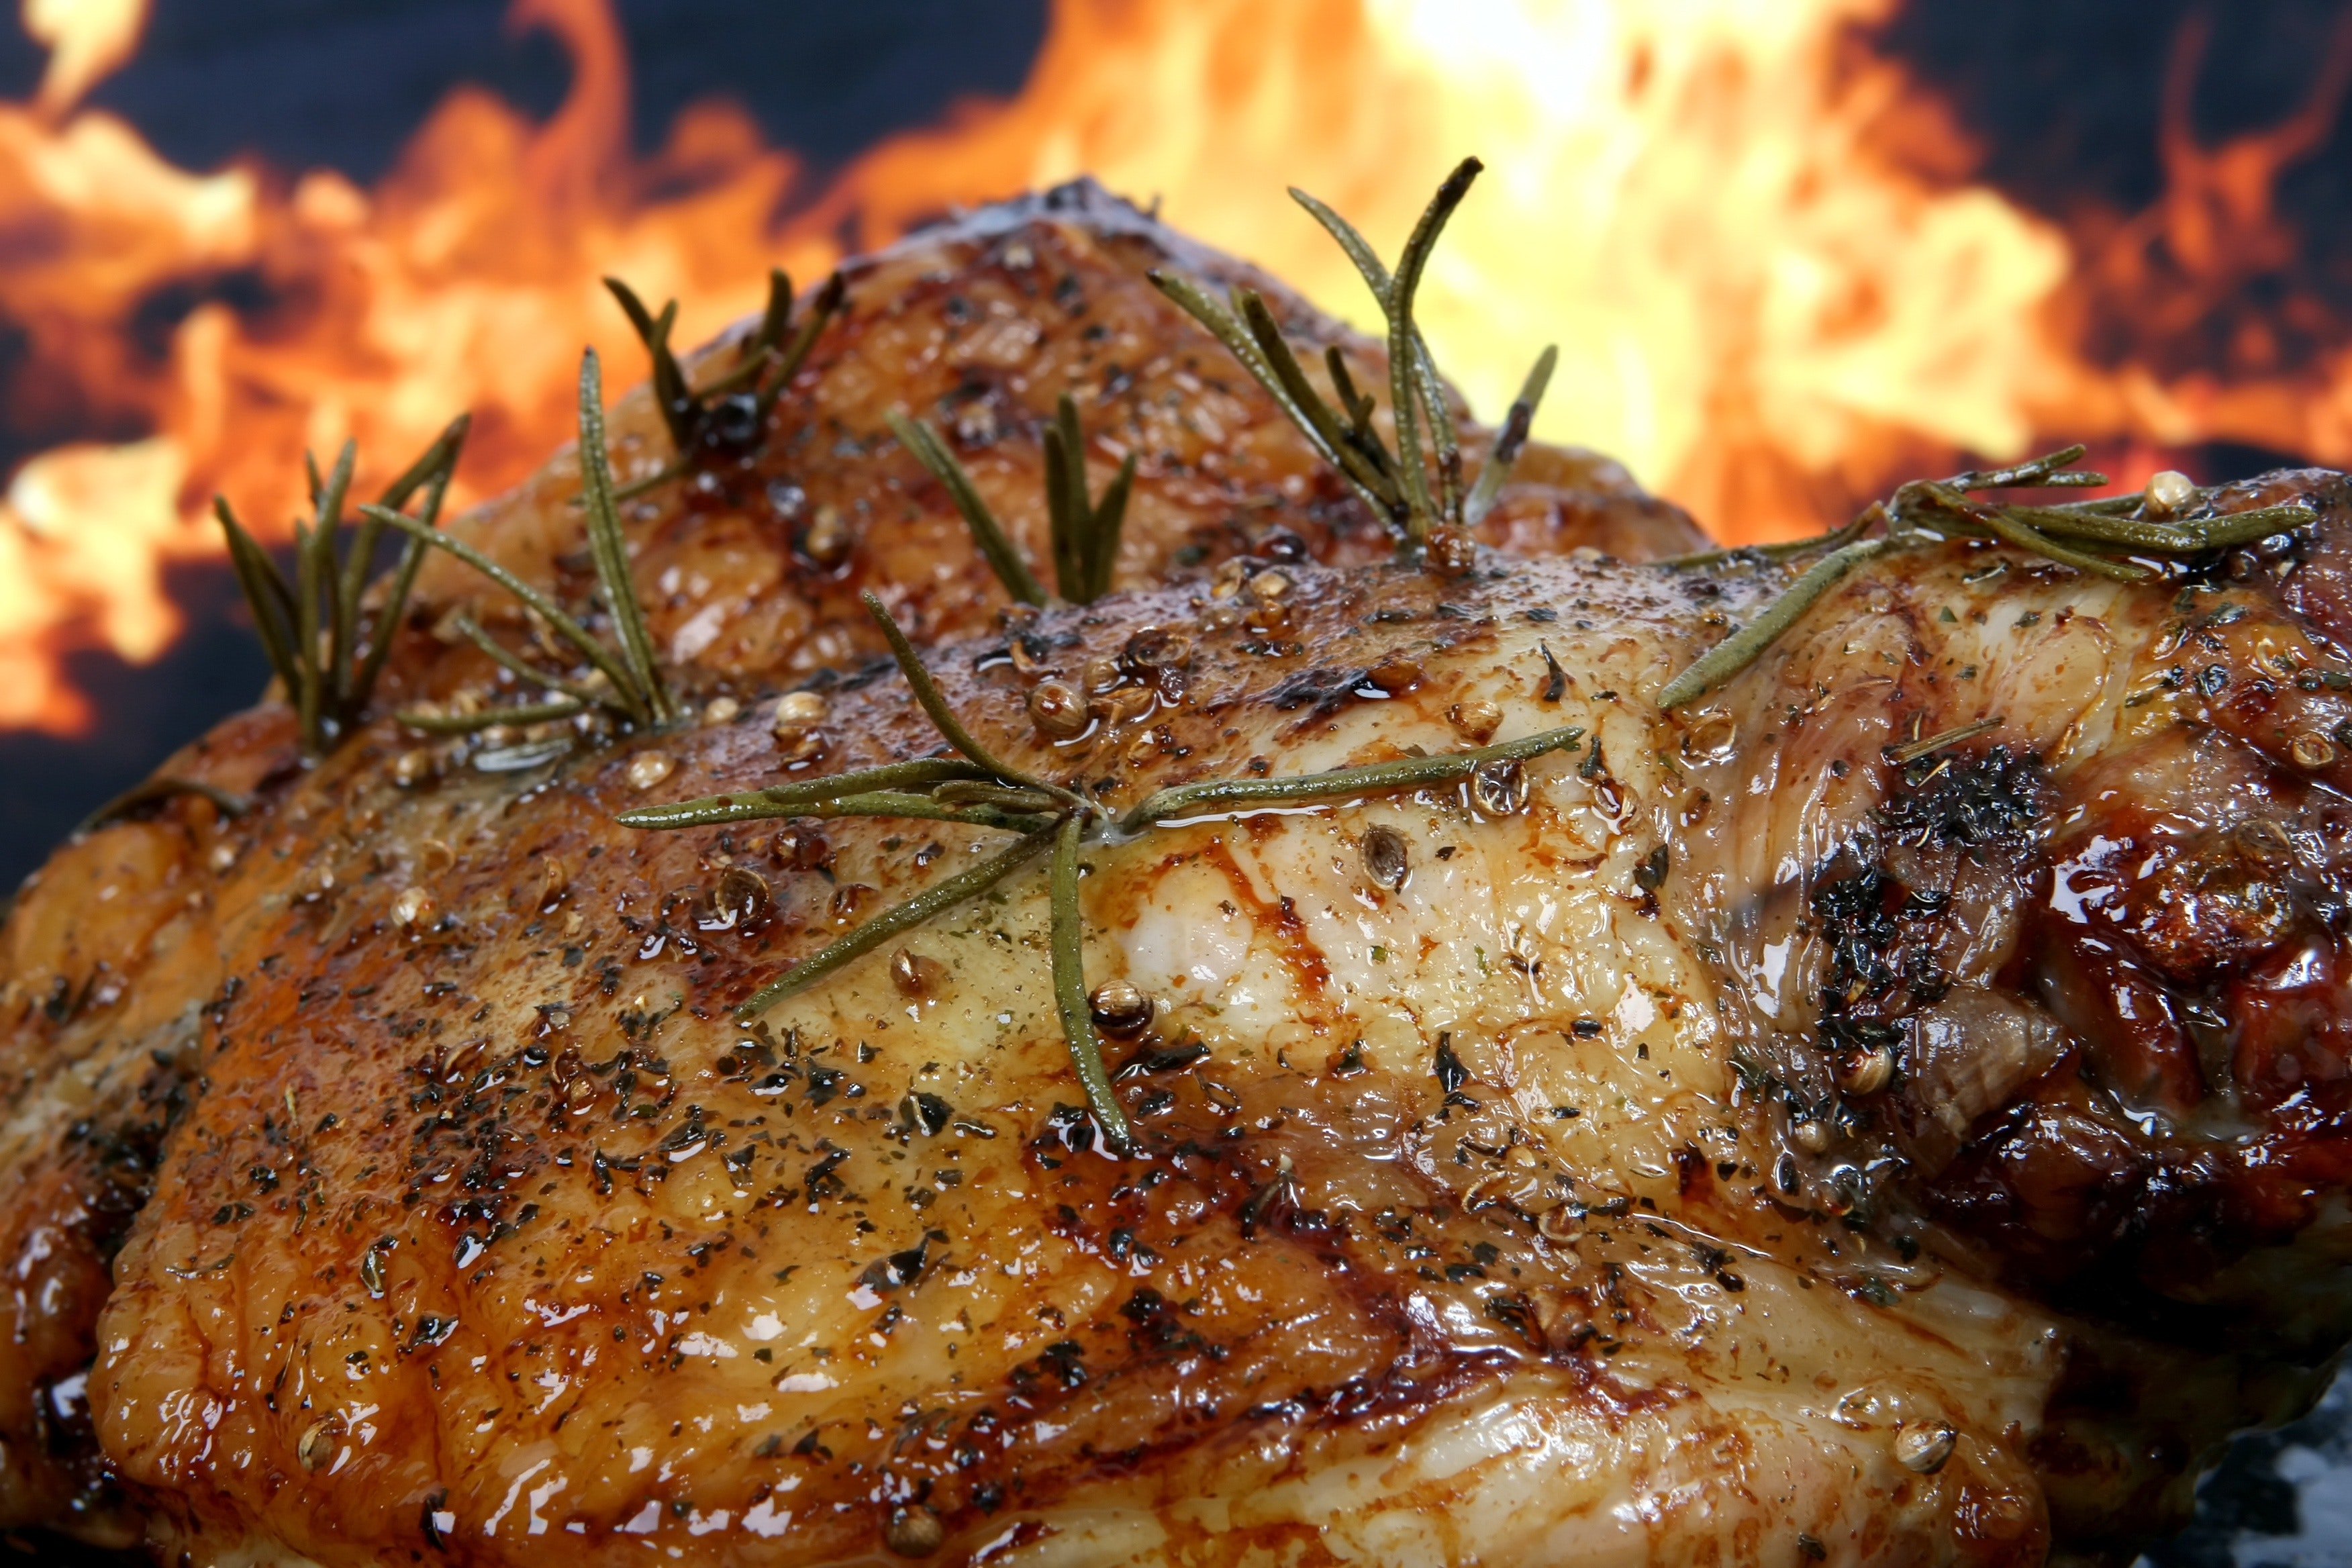 Cooked meat photo